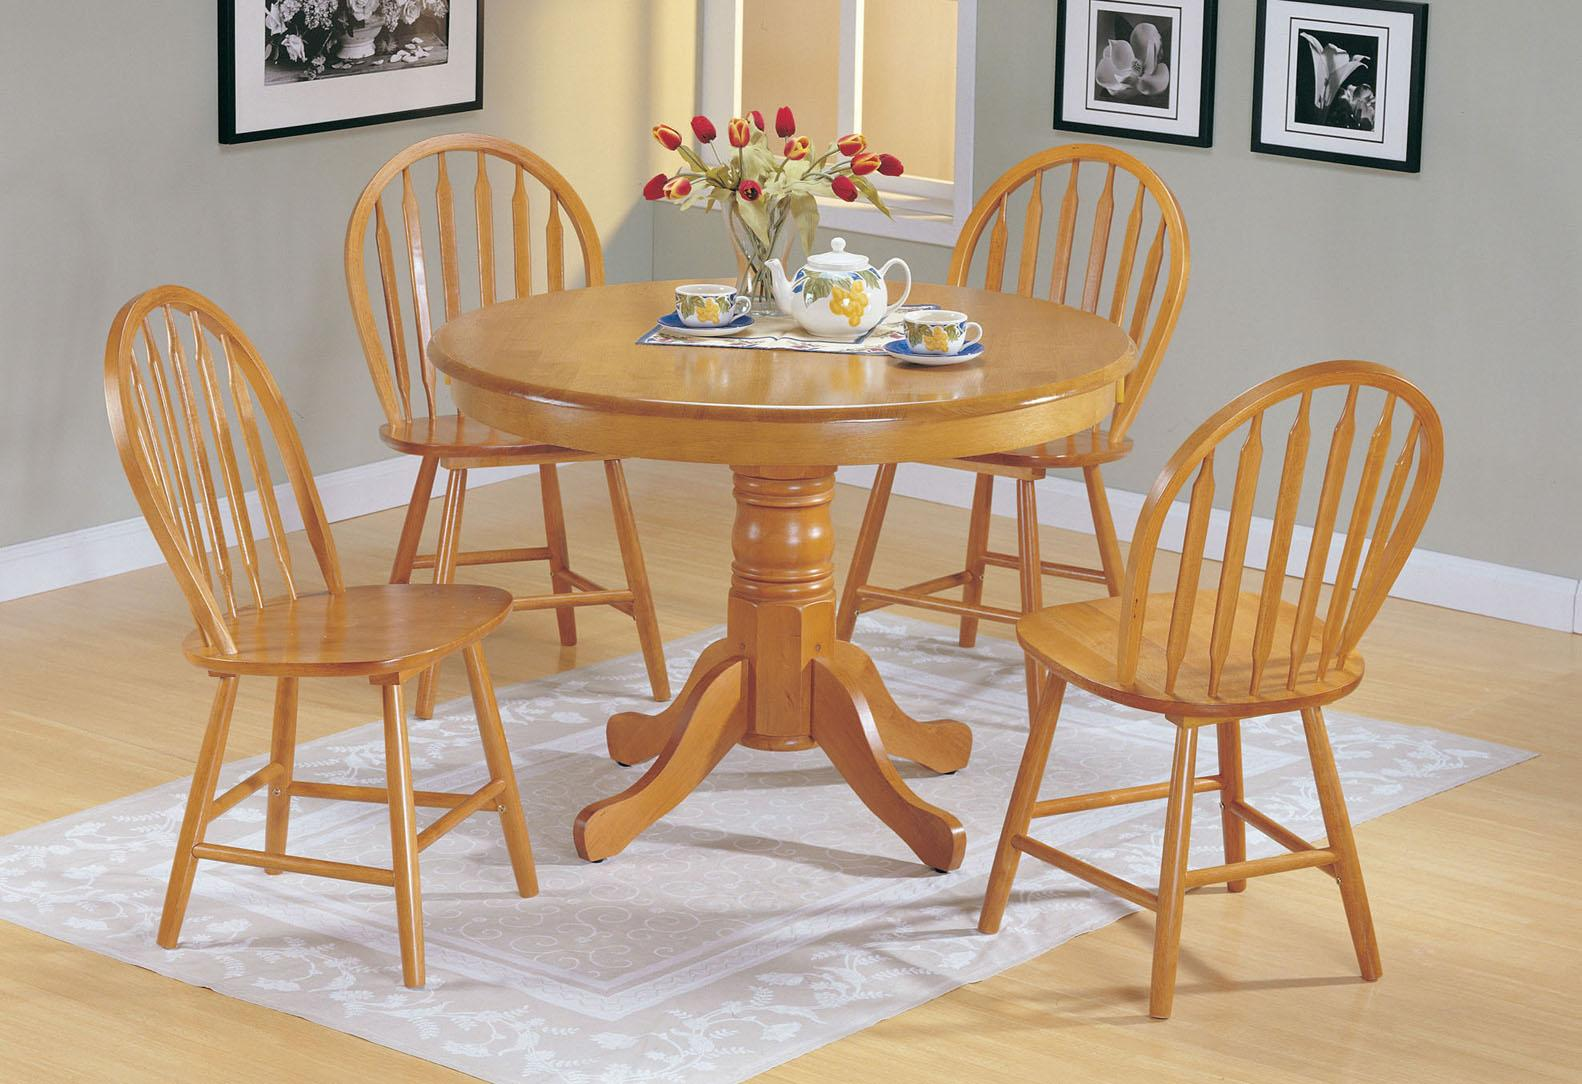 Acme Furniture Farmhouse Oak 5-Piece Round Dining Set - Item Number: 07021